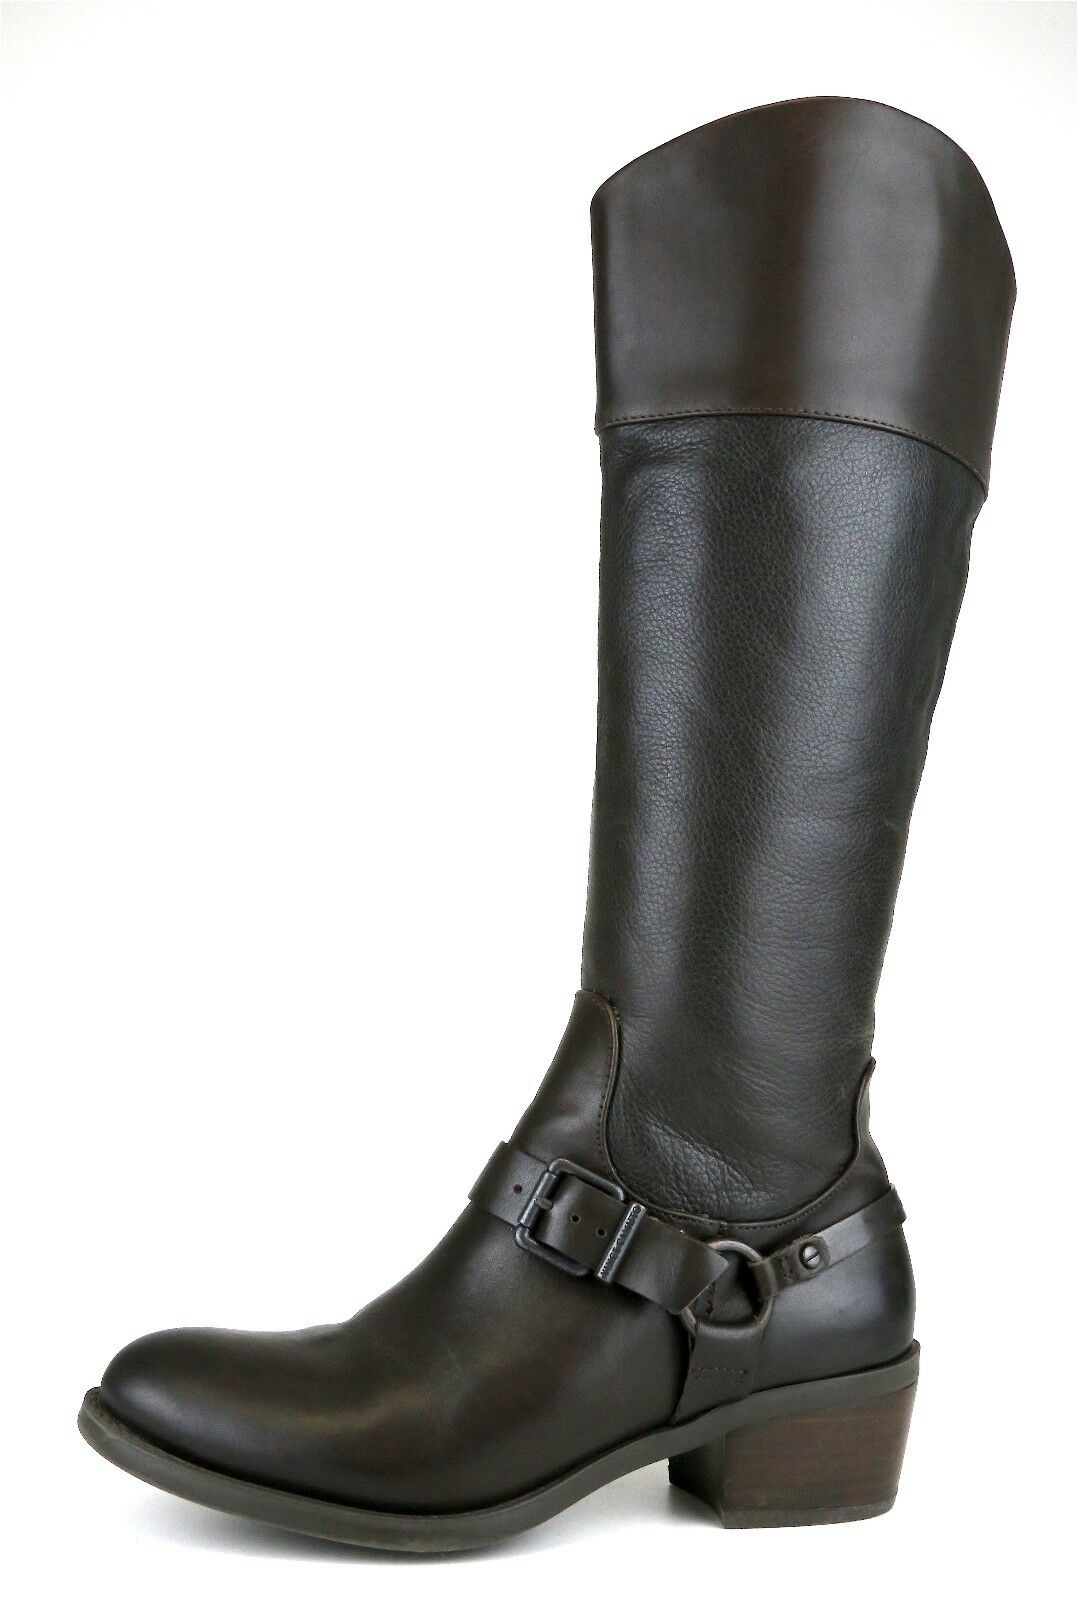 Vince Camuto Brunah Tall Leather Boot Brown Women Sz 6.5 M 5106 *